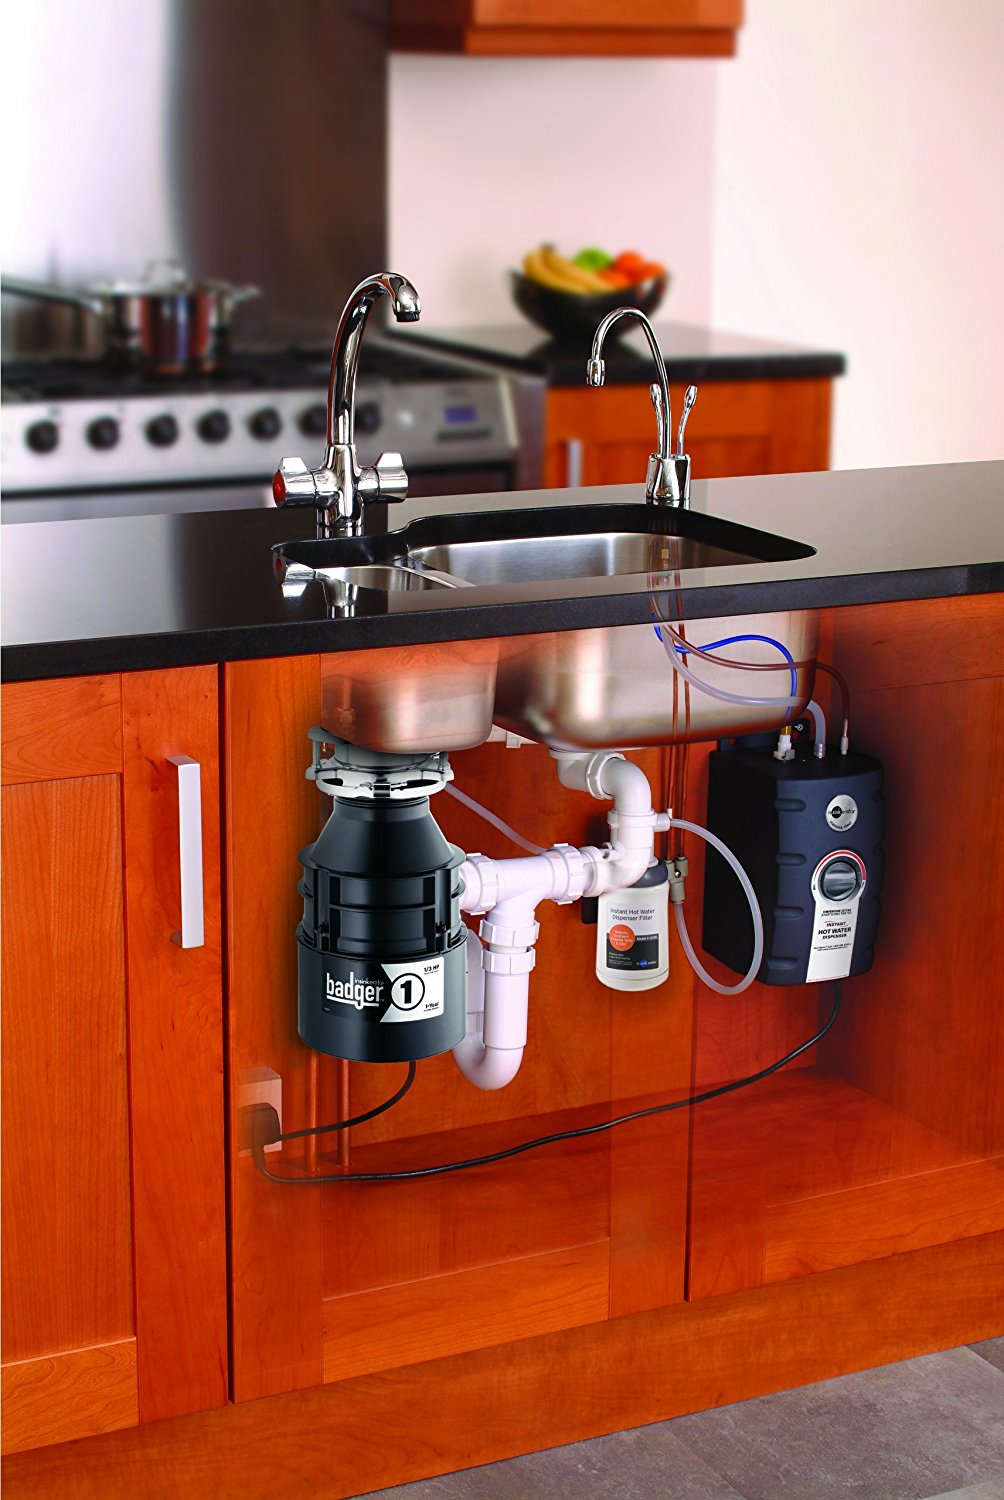 Boiling Hot Single Kitchen Tap And Pump